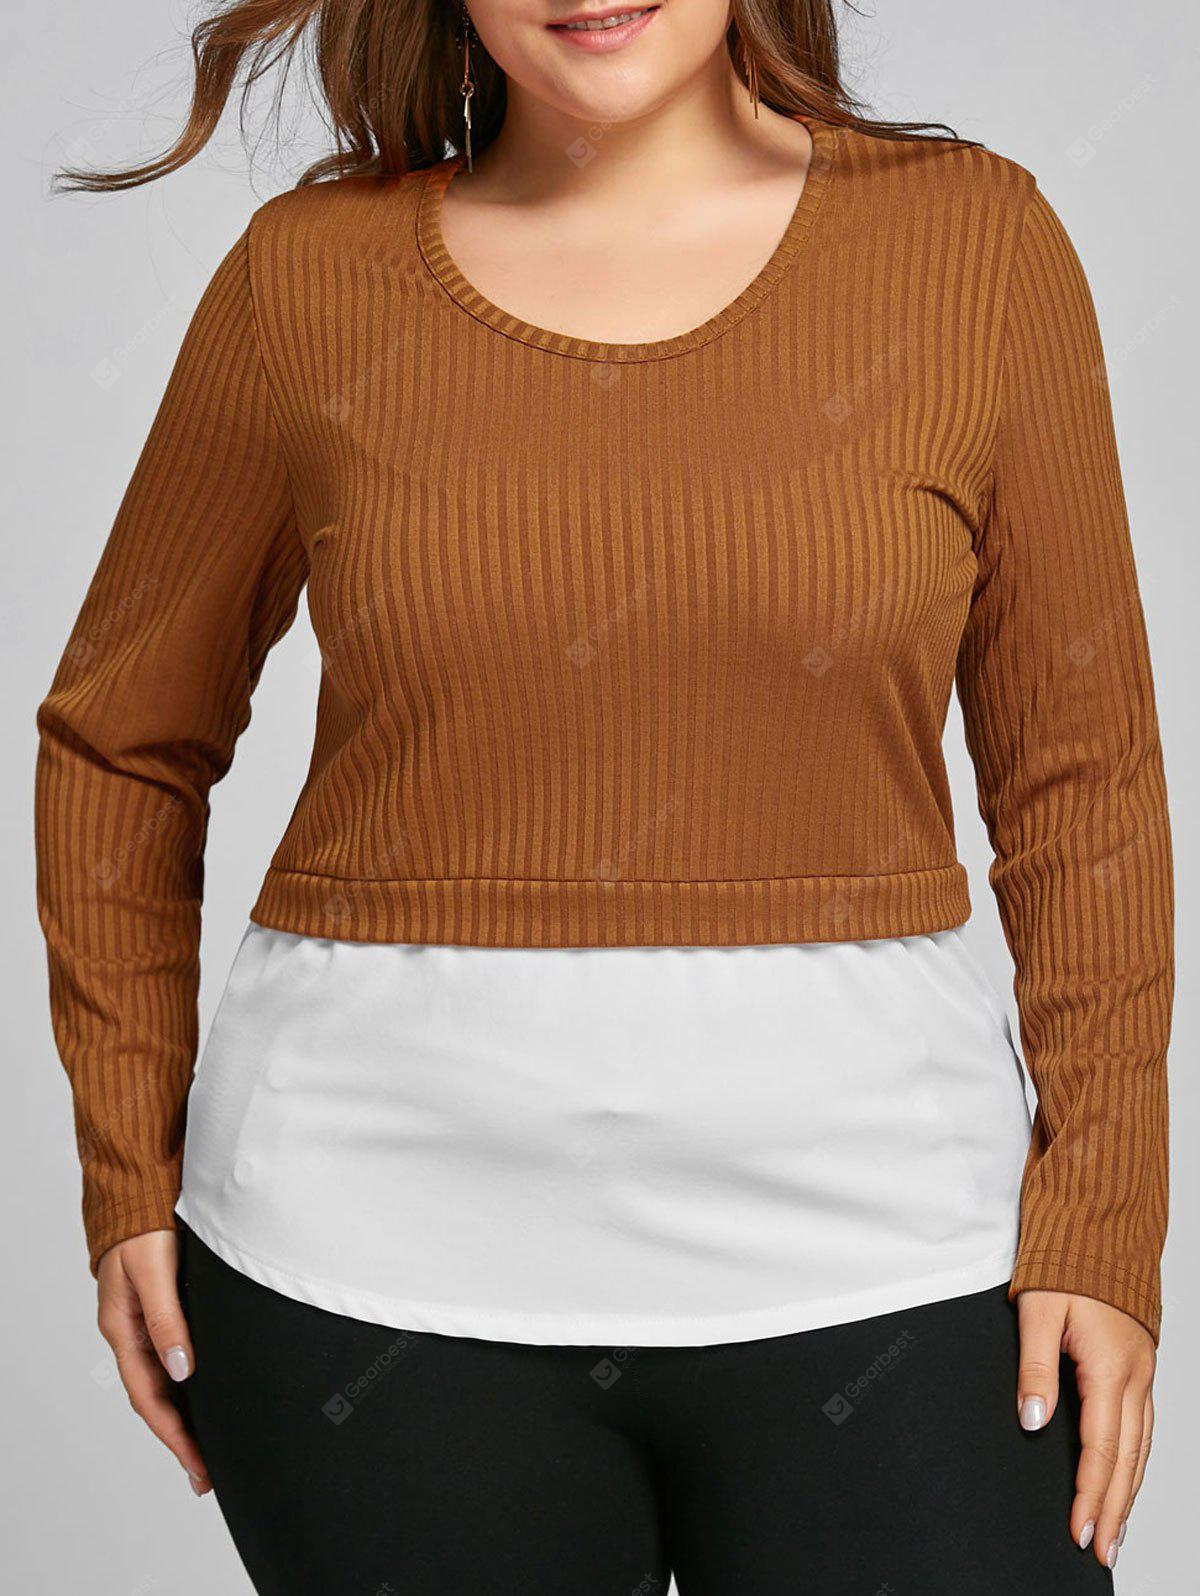 COFFEE 5XL Plus Size High Low Two Tone Blouse